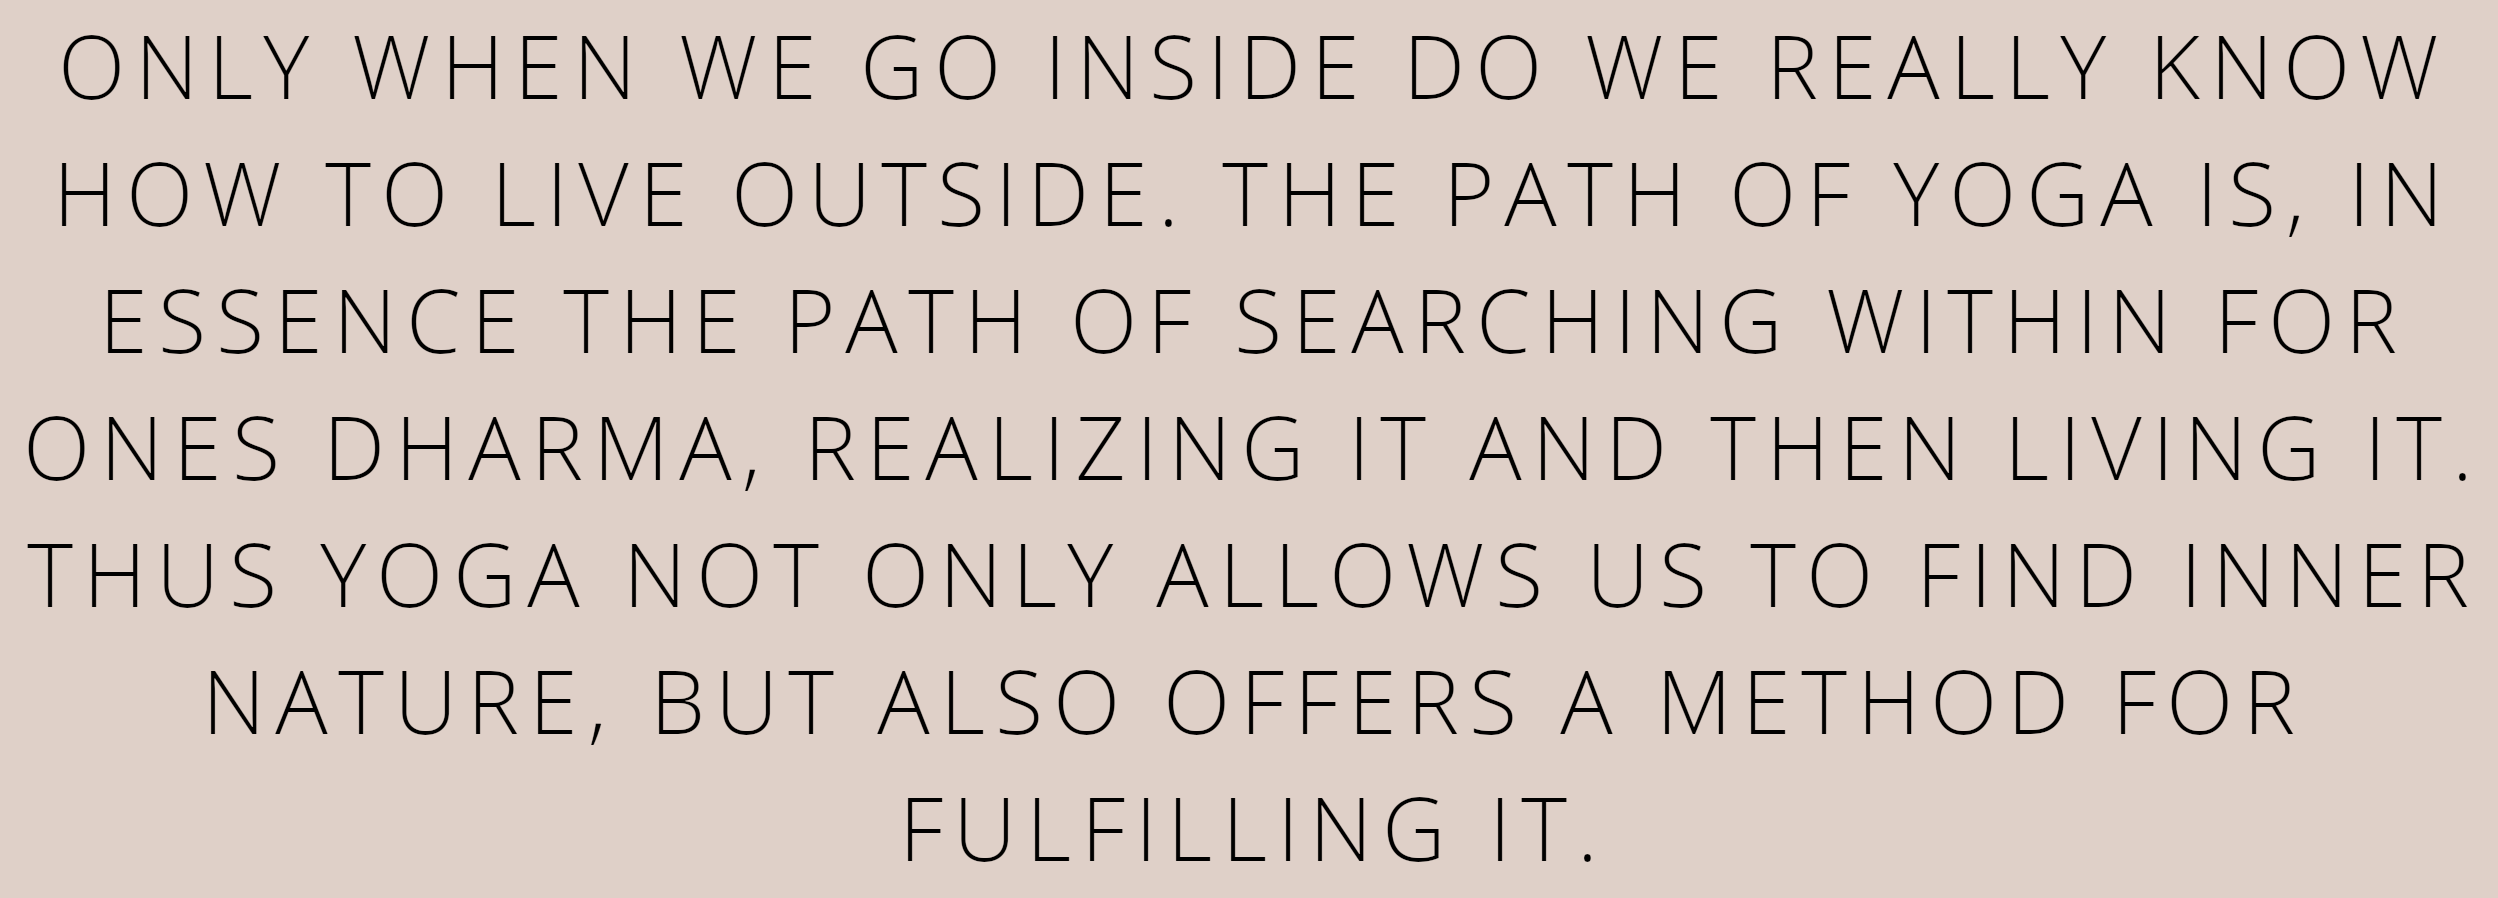 ONLY WHEN WE GO INSIDE DO WE REALLY KNOW HOW TO LIVE OUTSIDE. THE PATH OF YOGA IS, IN ESSENCE THE PATH OF SEARCHING WITHIN FOR ONES DHARMA, REALIZING IT AND THEN LIVING IT. THUS YOGA NOT ONLY ALLOWS US TO FIND INNER NATURE, BUT ALSO OFFERS A METHOD FOR FULFILLING IT.